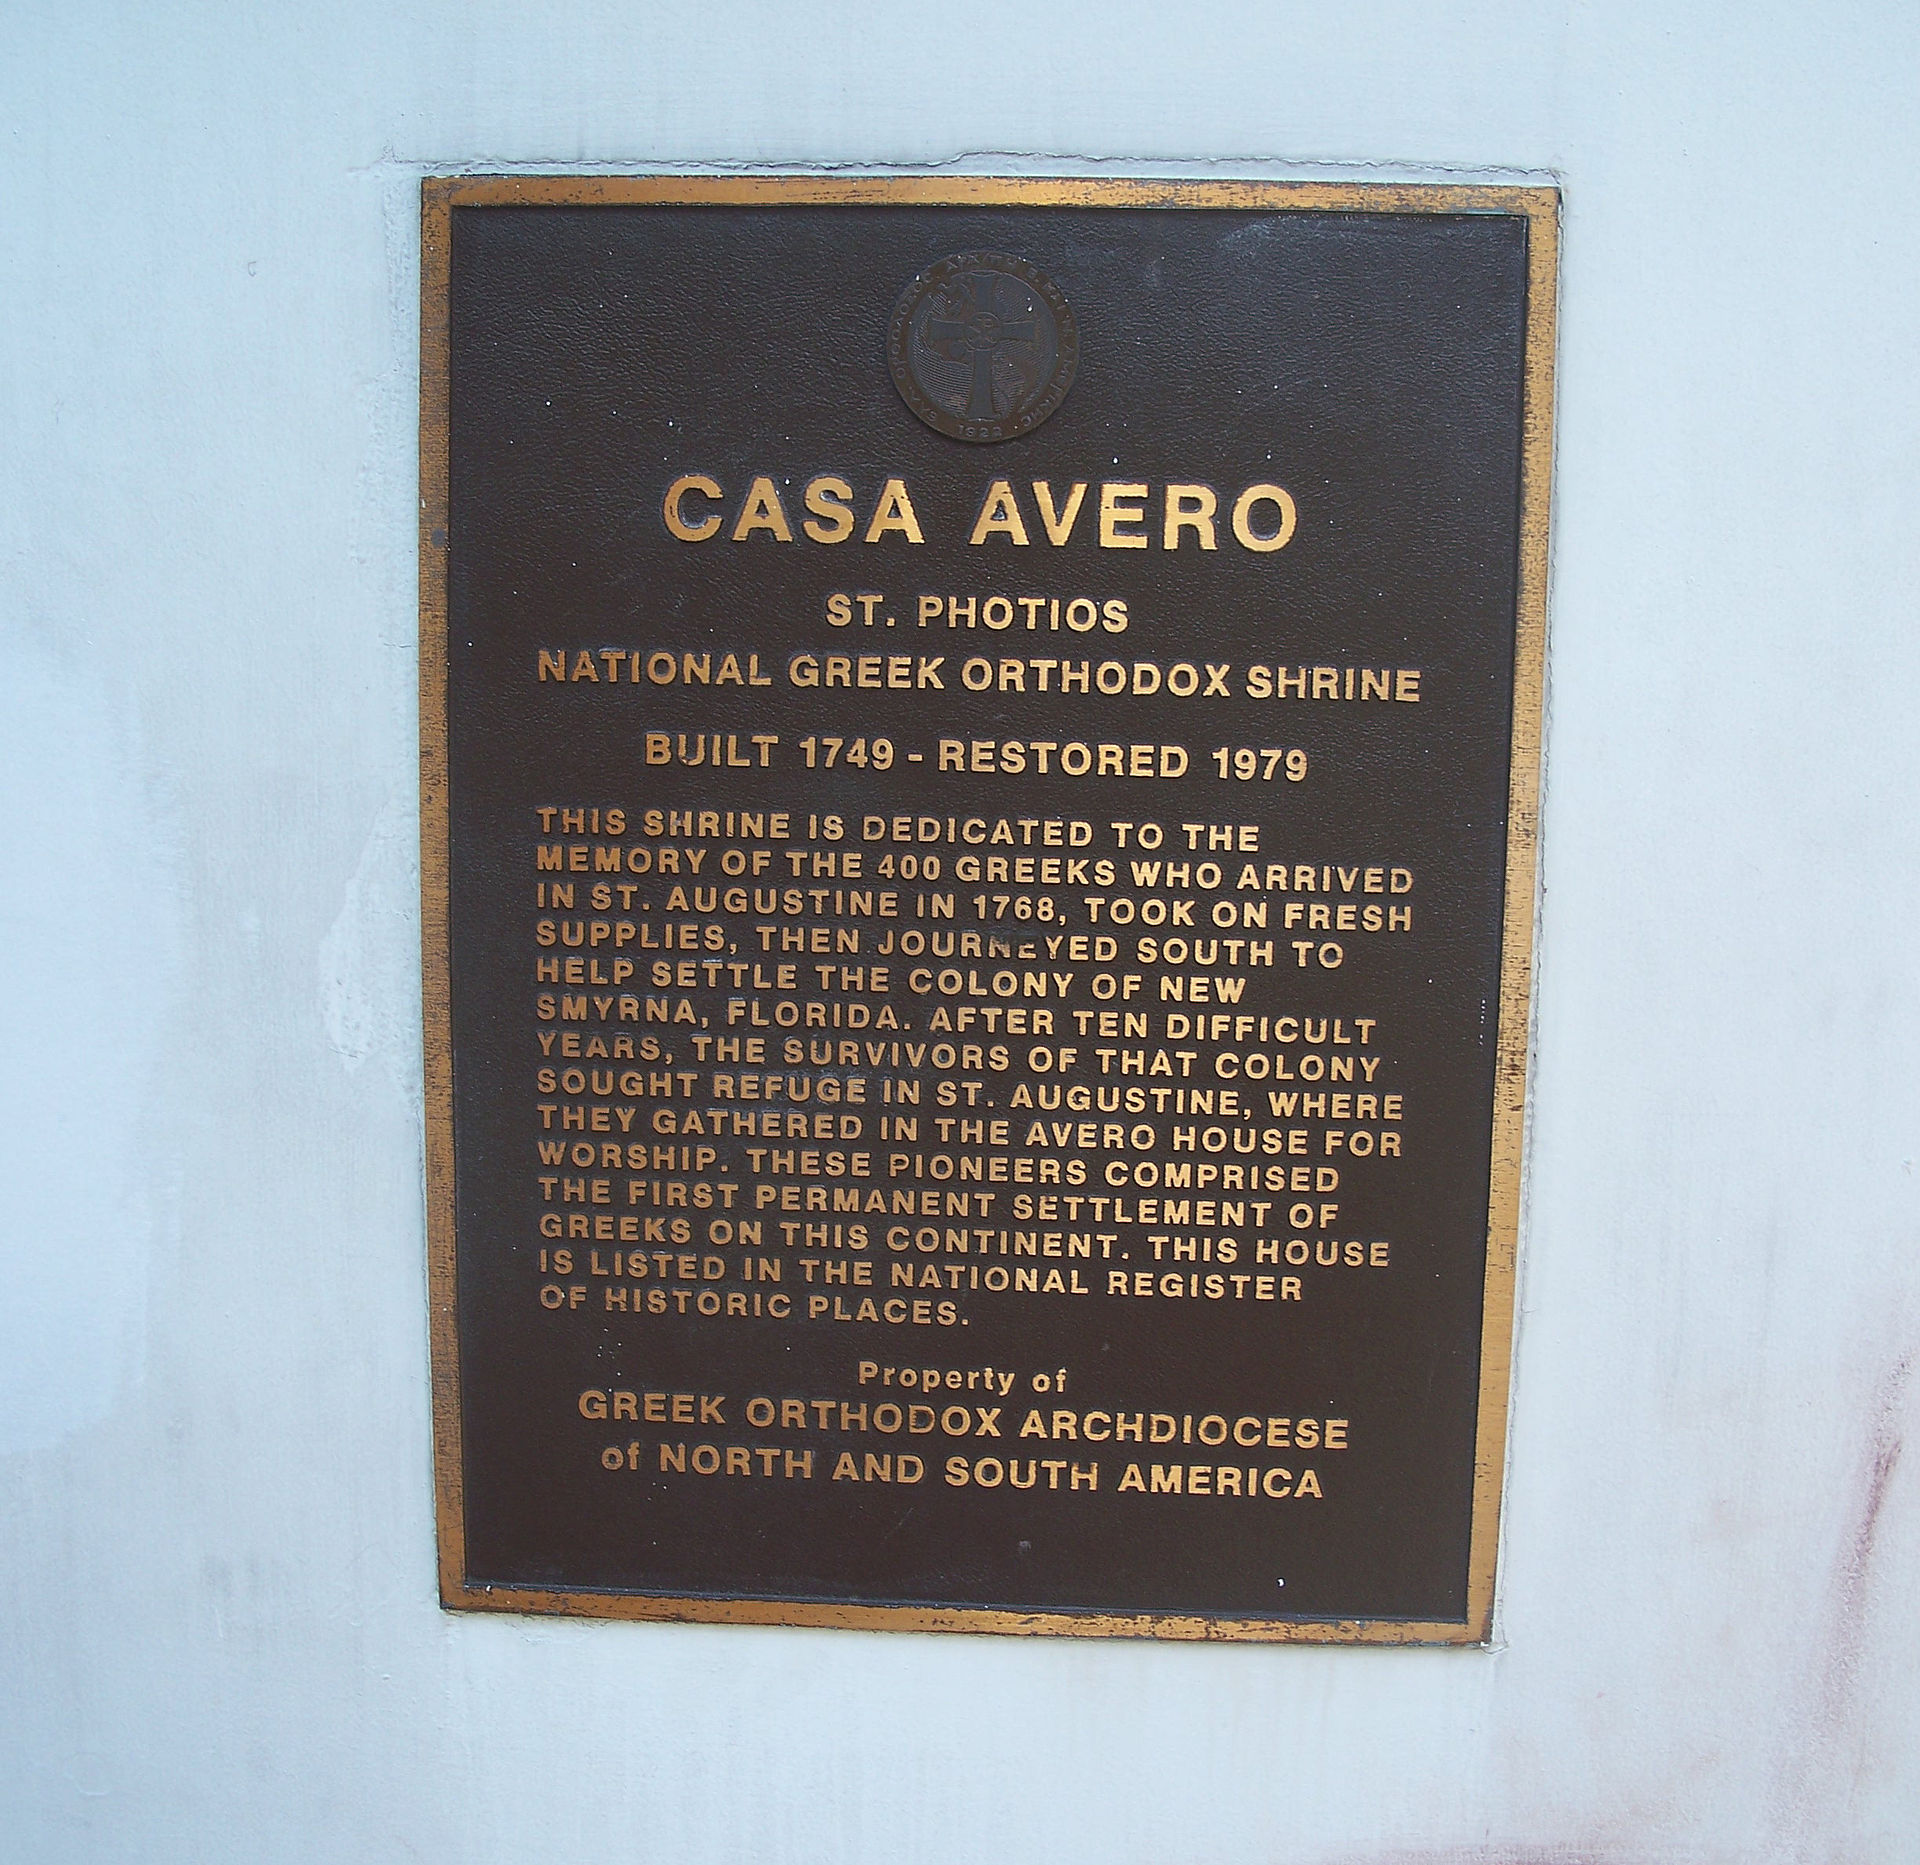 Plaque located on the Avero House. Credit: Ebyabe, WikimediaCommons